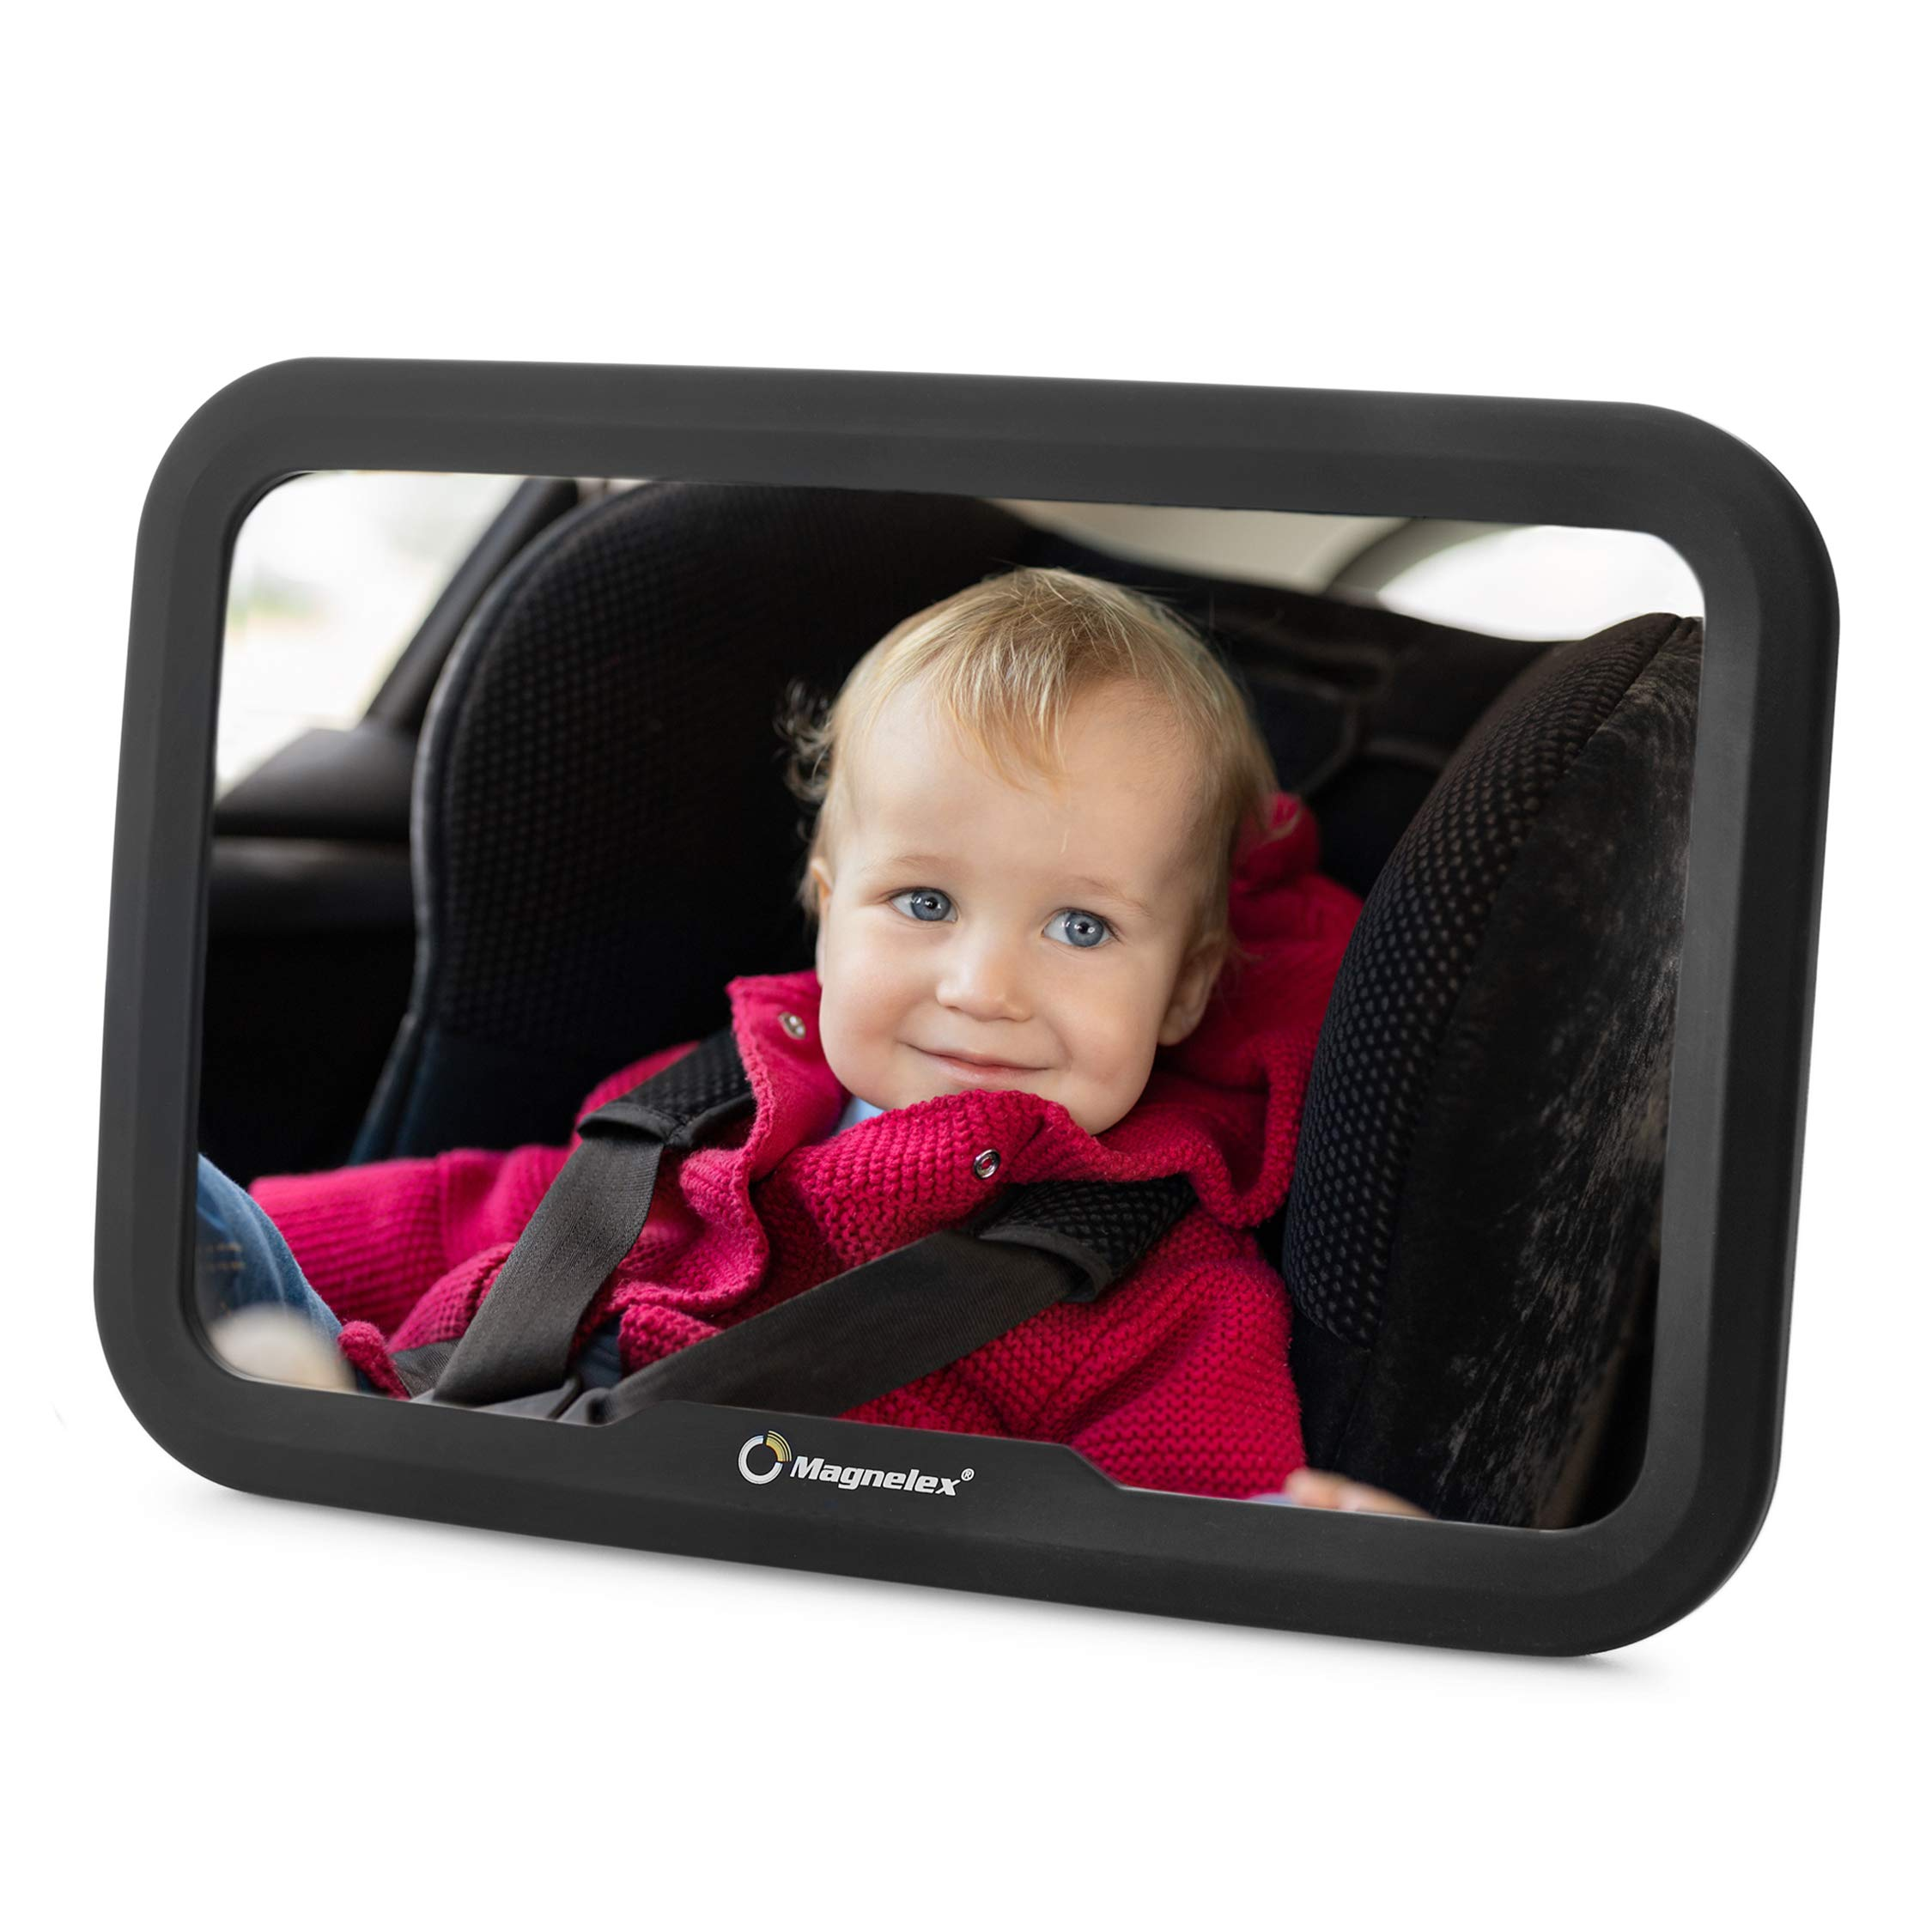 Magnelex Baby Car Mirror for Rear-Facing Infants and Toddlers. Wide Crystal-Clear View Car Seat Mirror, Safe and Shatterproof, Simple Install with No Tools. No Jiggle or Vibration. Excellent Gift Idea by Magnelex